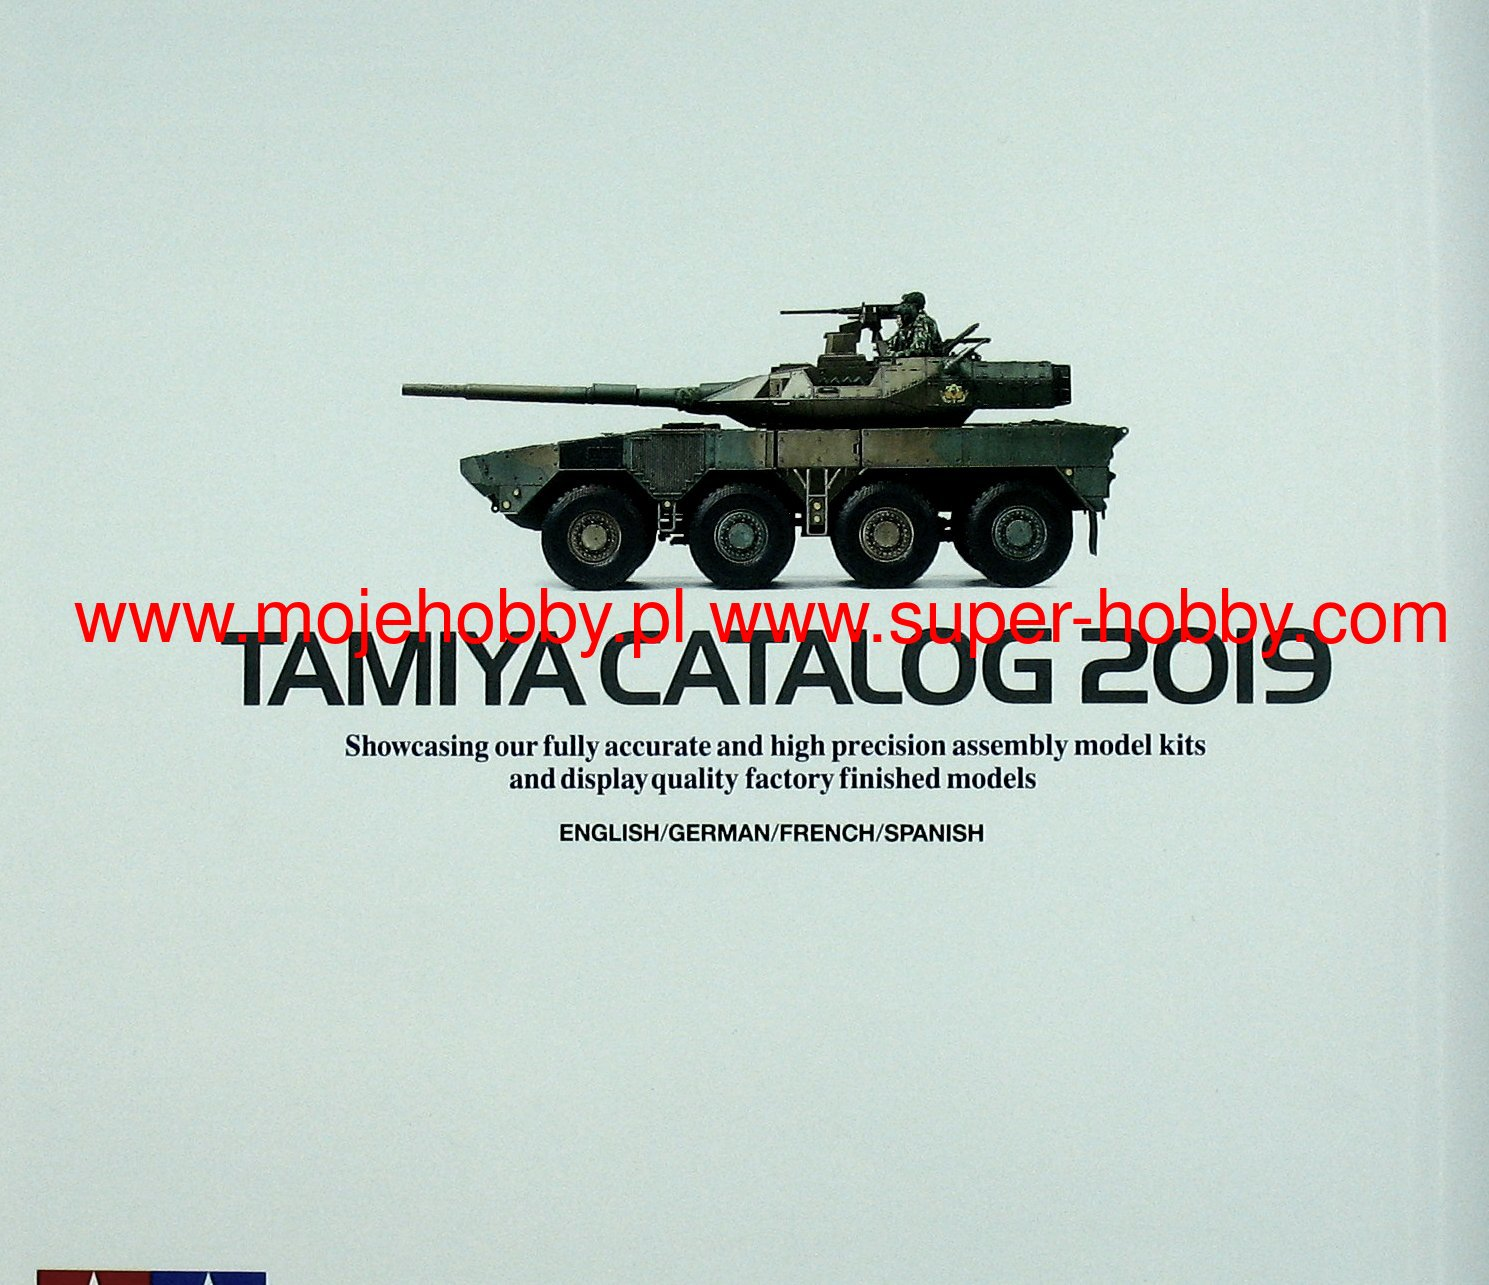 Tamiya 2019 Catalogue of Model Kits 64419